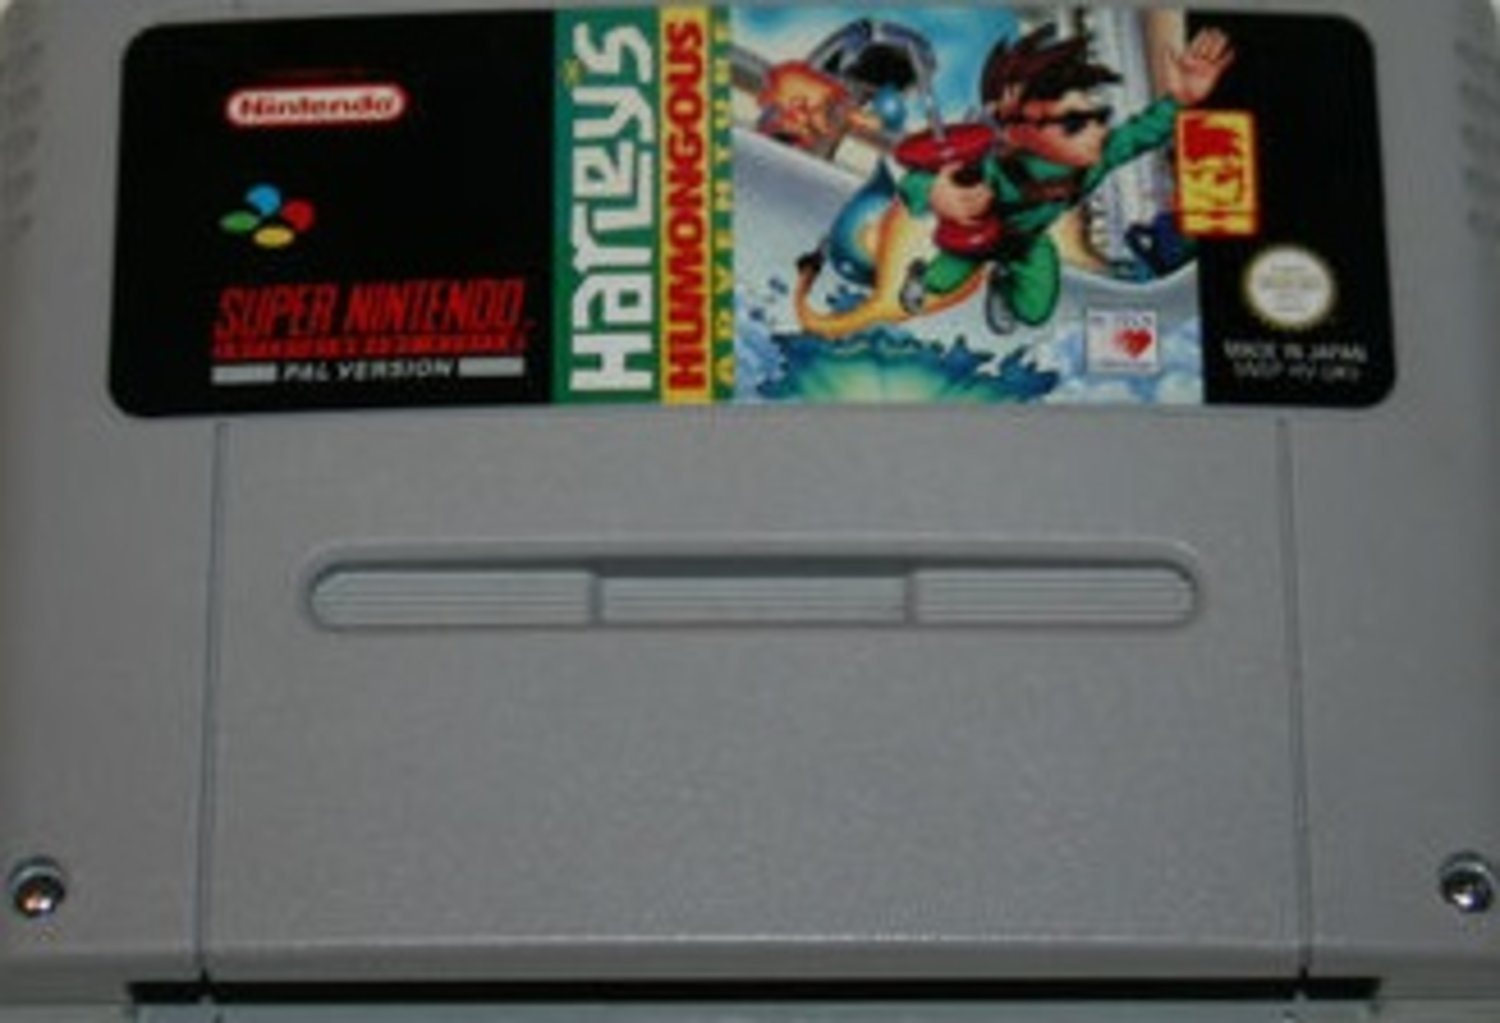 Harleys Humongous Adventure - Super Nintendo